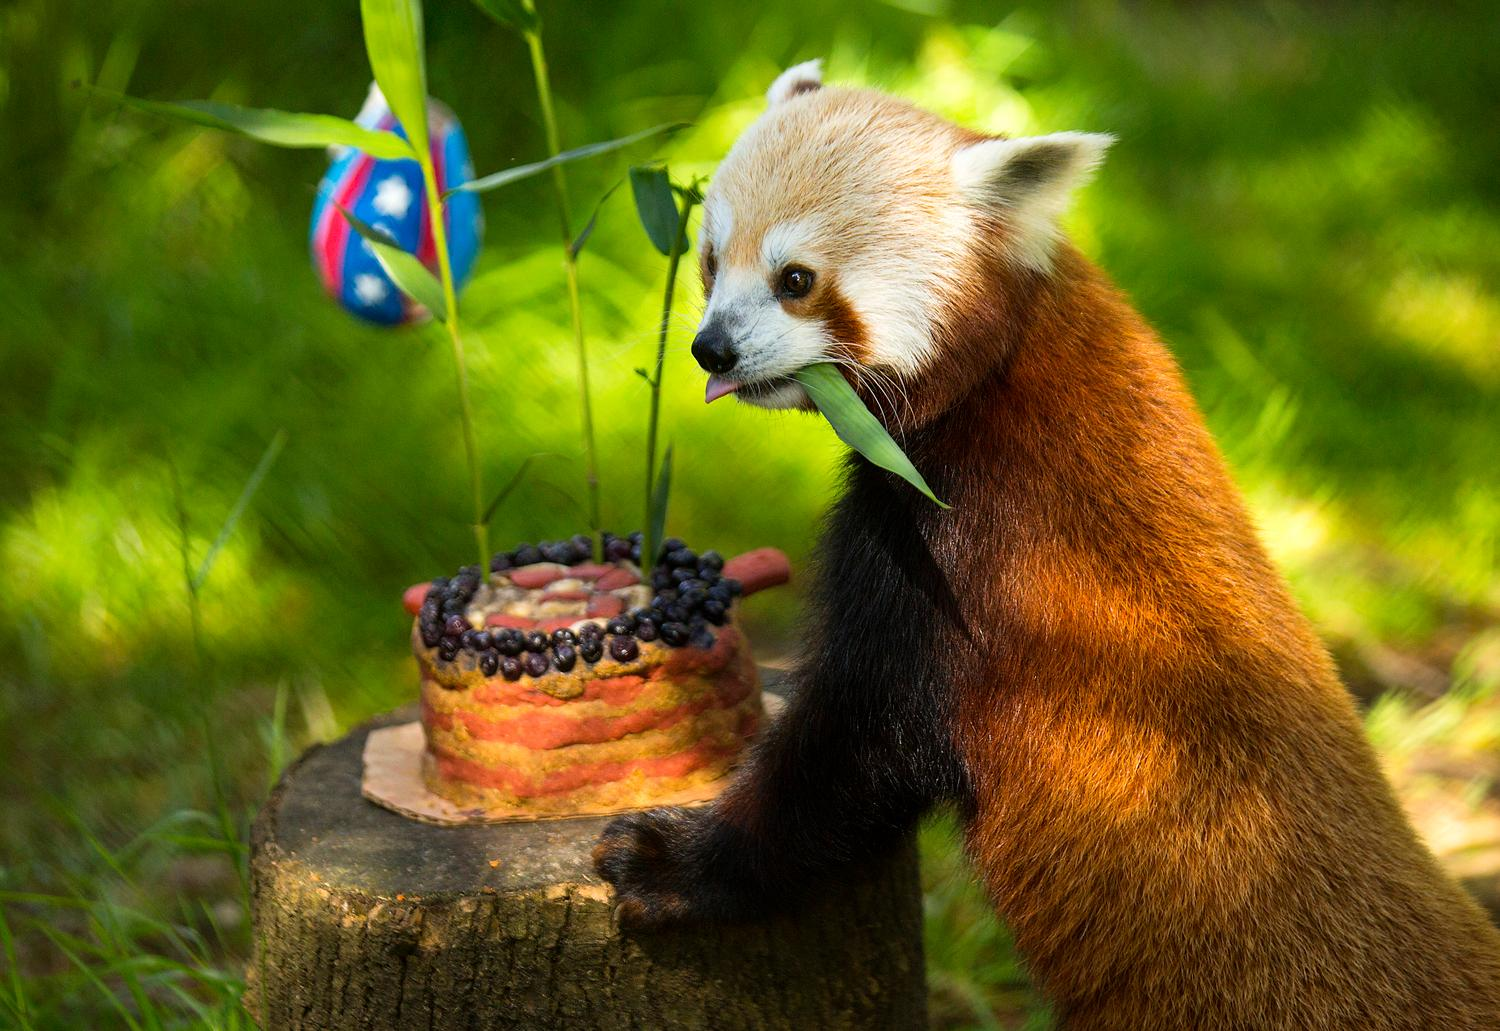 Carson, the Woodland Park Zoo's red panda, celebrates his third birthday and the fourth of July with an American flag themed cake and a rocket stuffed with treats Friday, June 30, 2017. (Sy Bean / Seattle Refined)